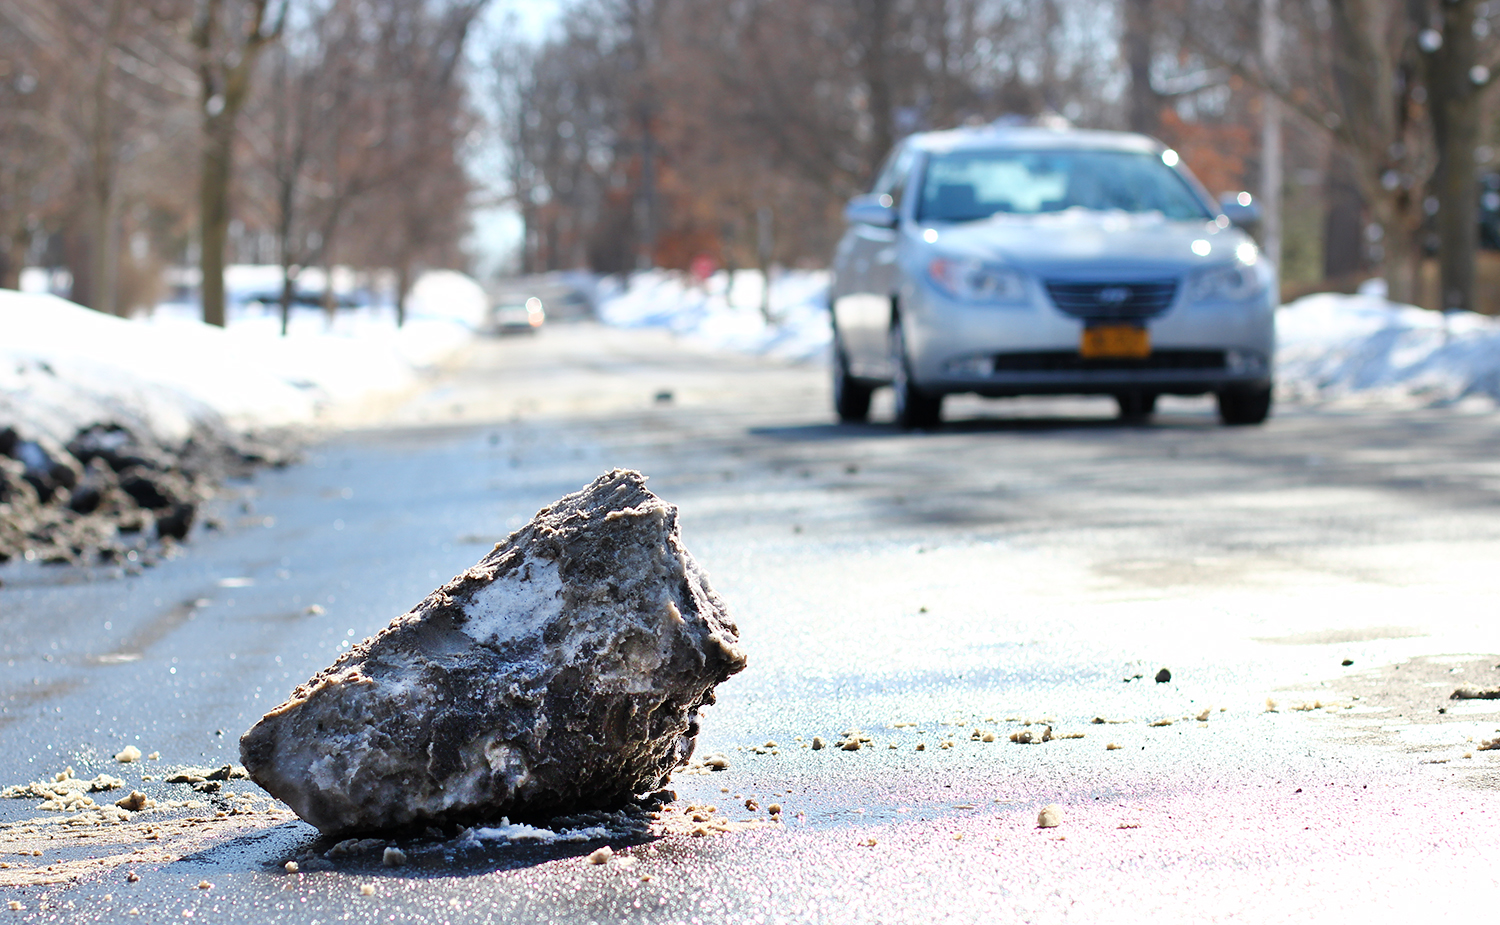 Salt Brine Debris Can Be a Danger for Drivers